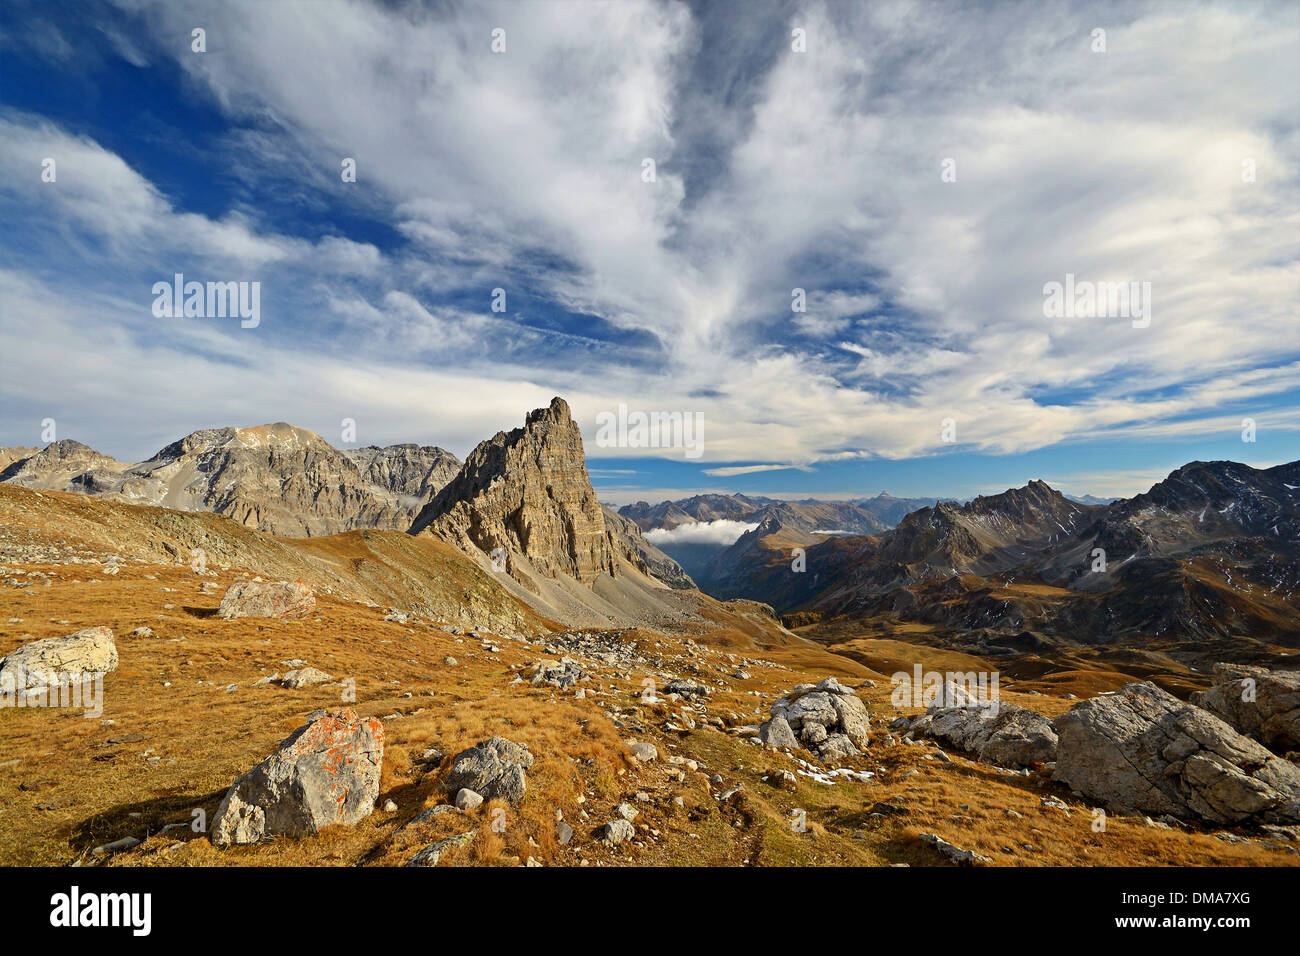 Mountain footpath leading up to the top of M. Thabor (3178 m) in afternoon light on barren terrain, italian-french Stock Photo